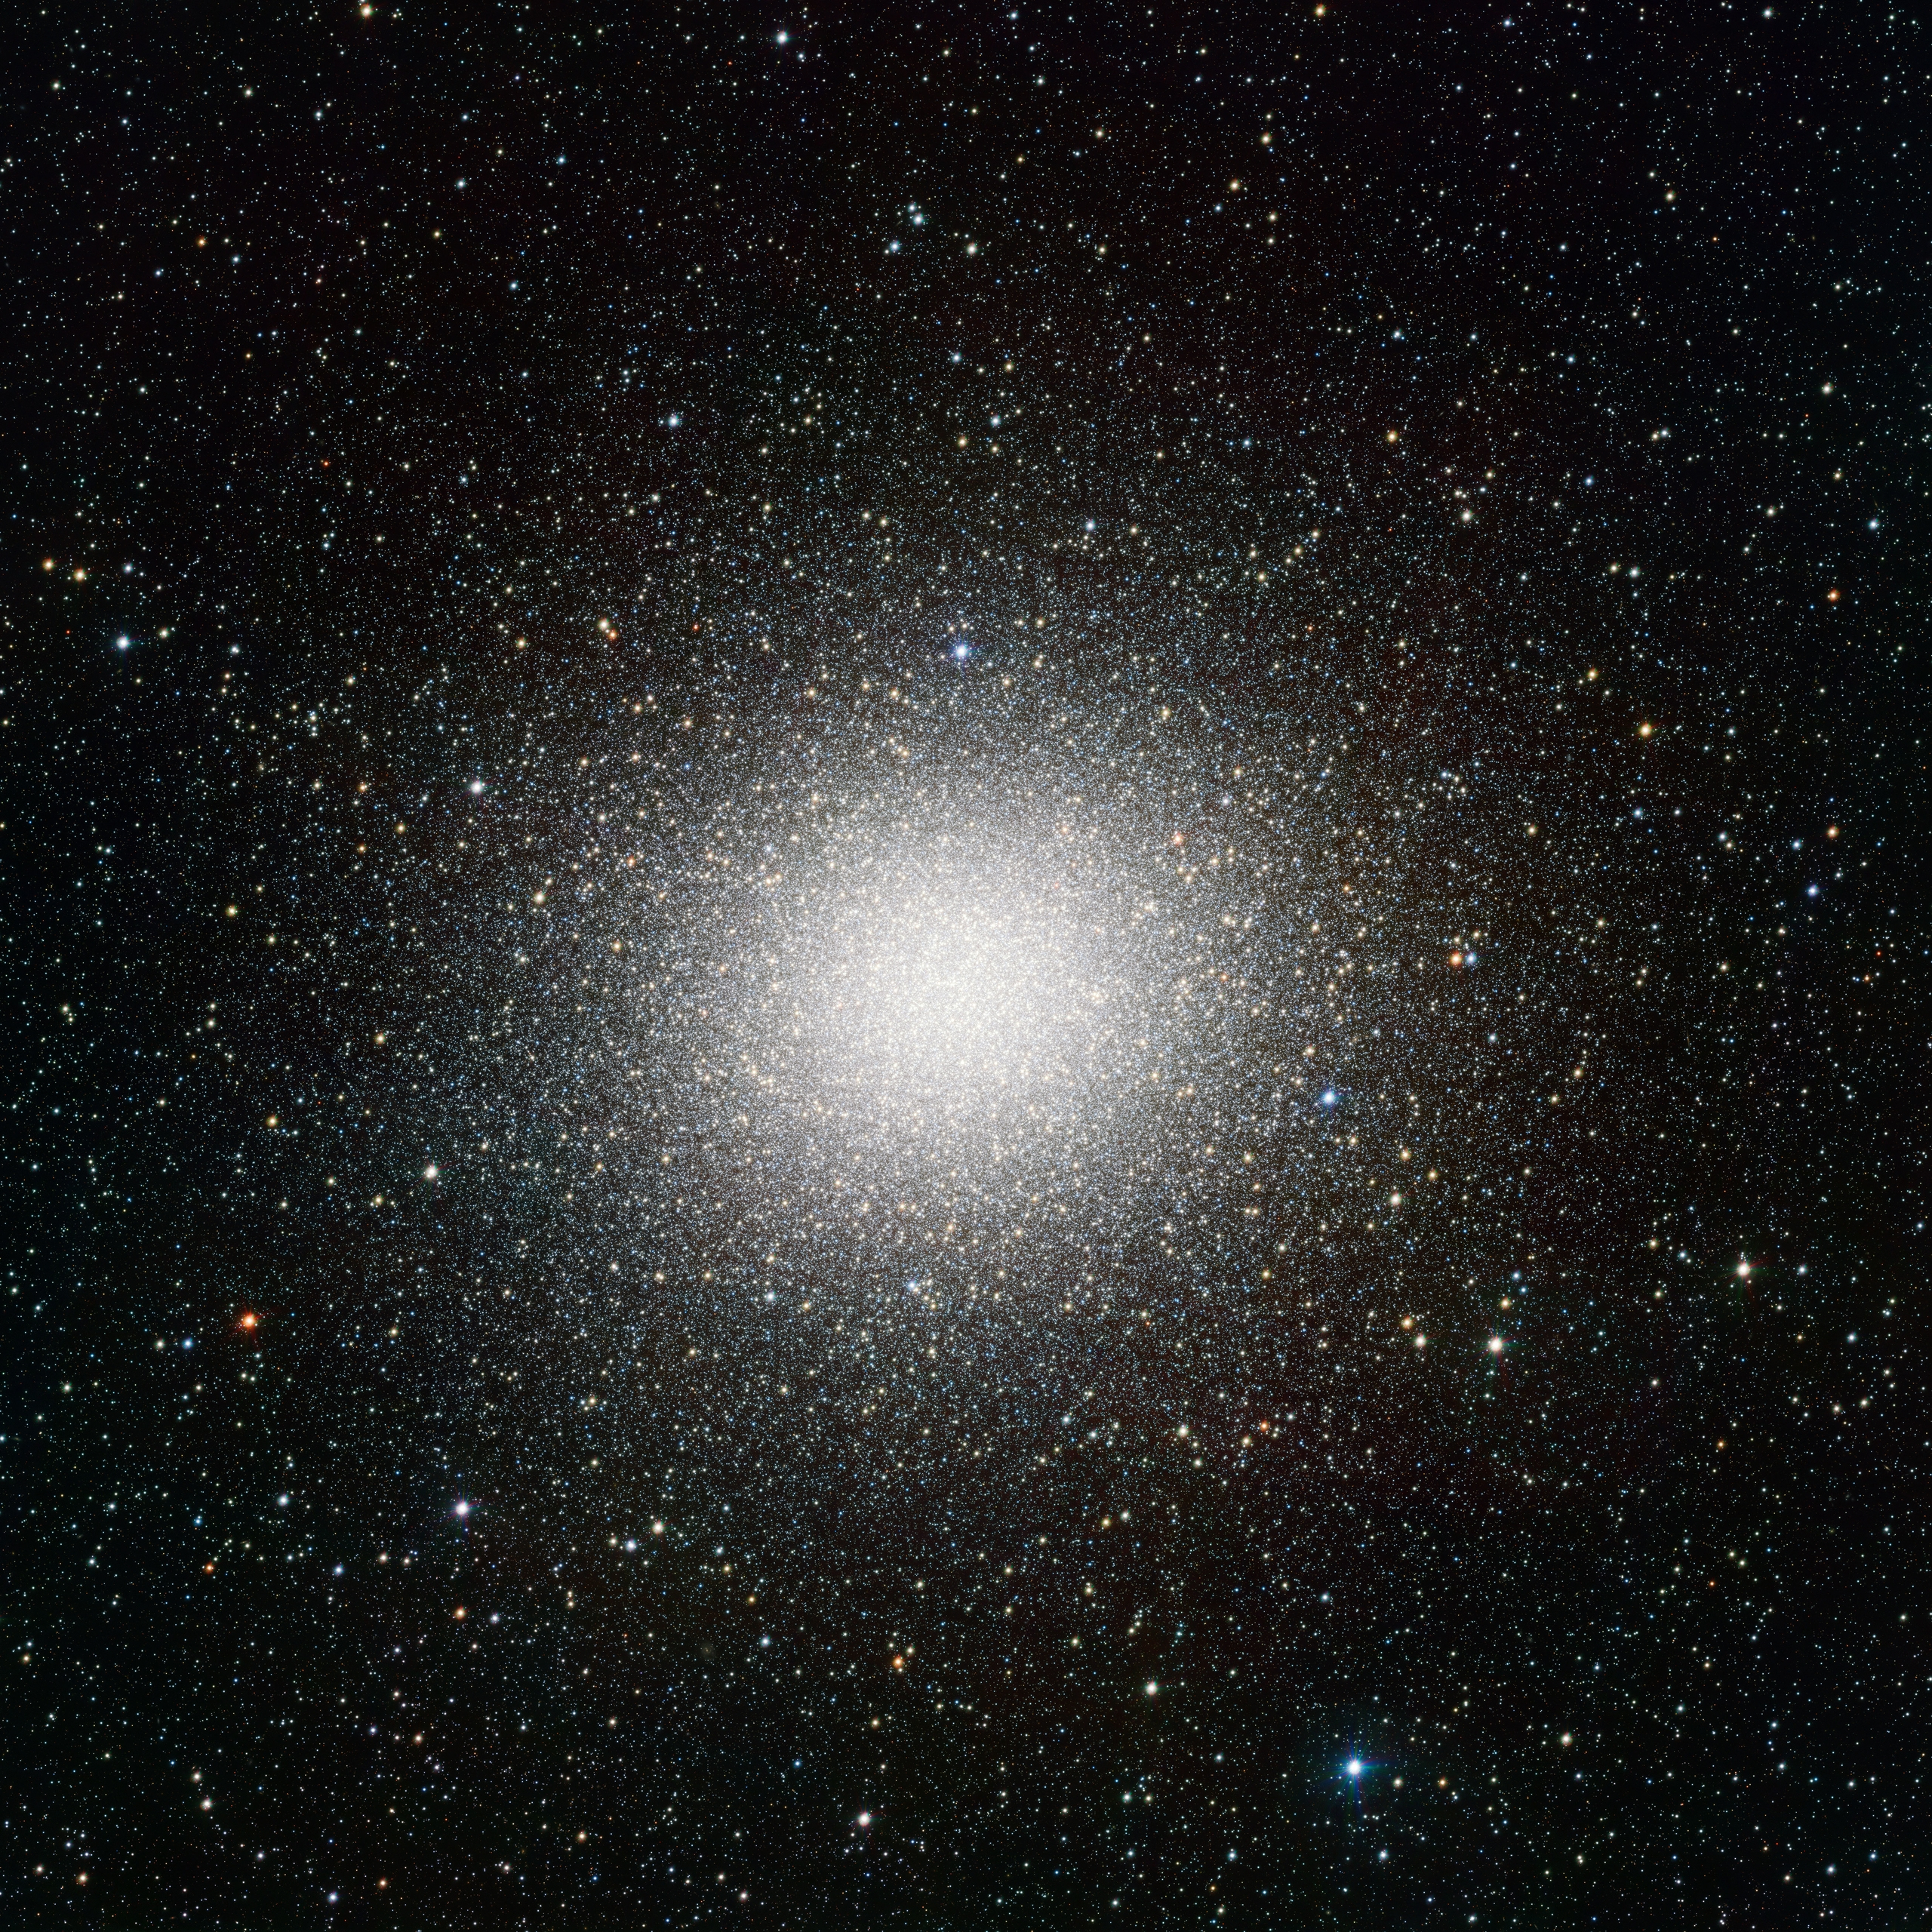 VST_image_of_the_giant_globular_star_cluster_Omega_Centauri.jpg